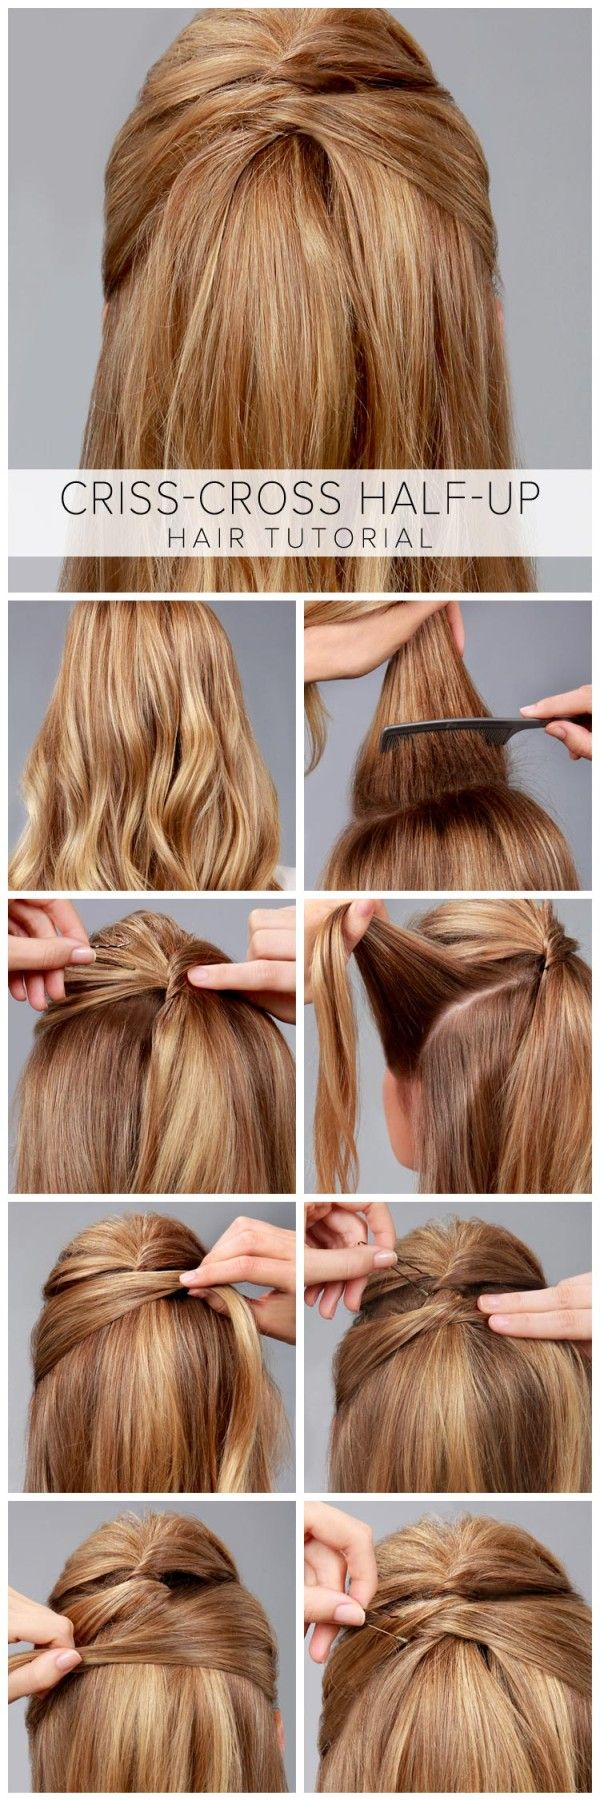 14 Cute And Easy Ways To Create Awesome Hairstyle For Less Than 2 ...